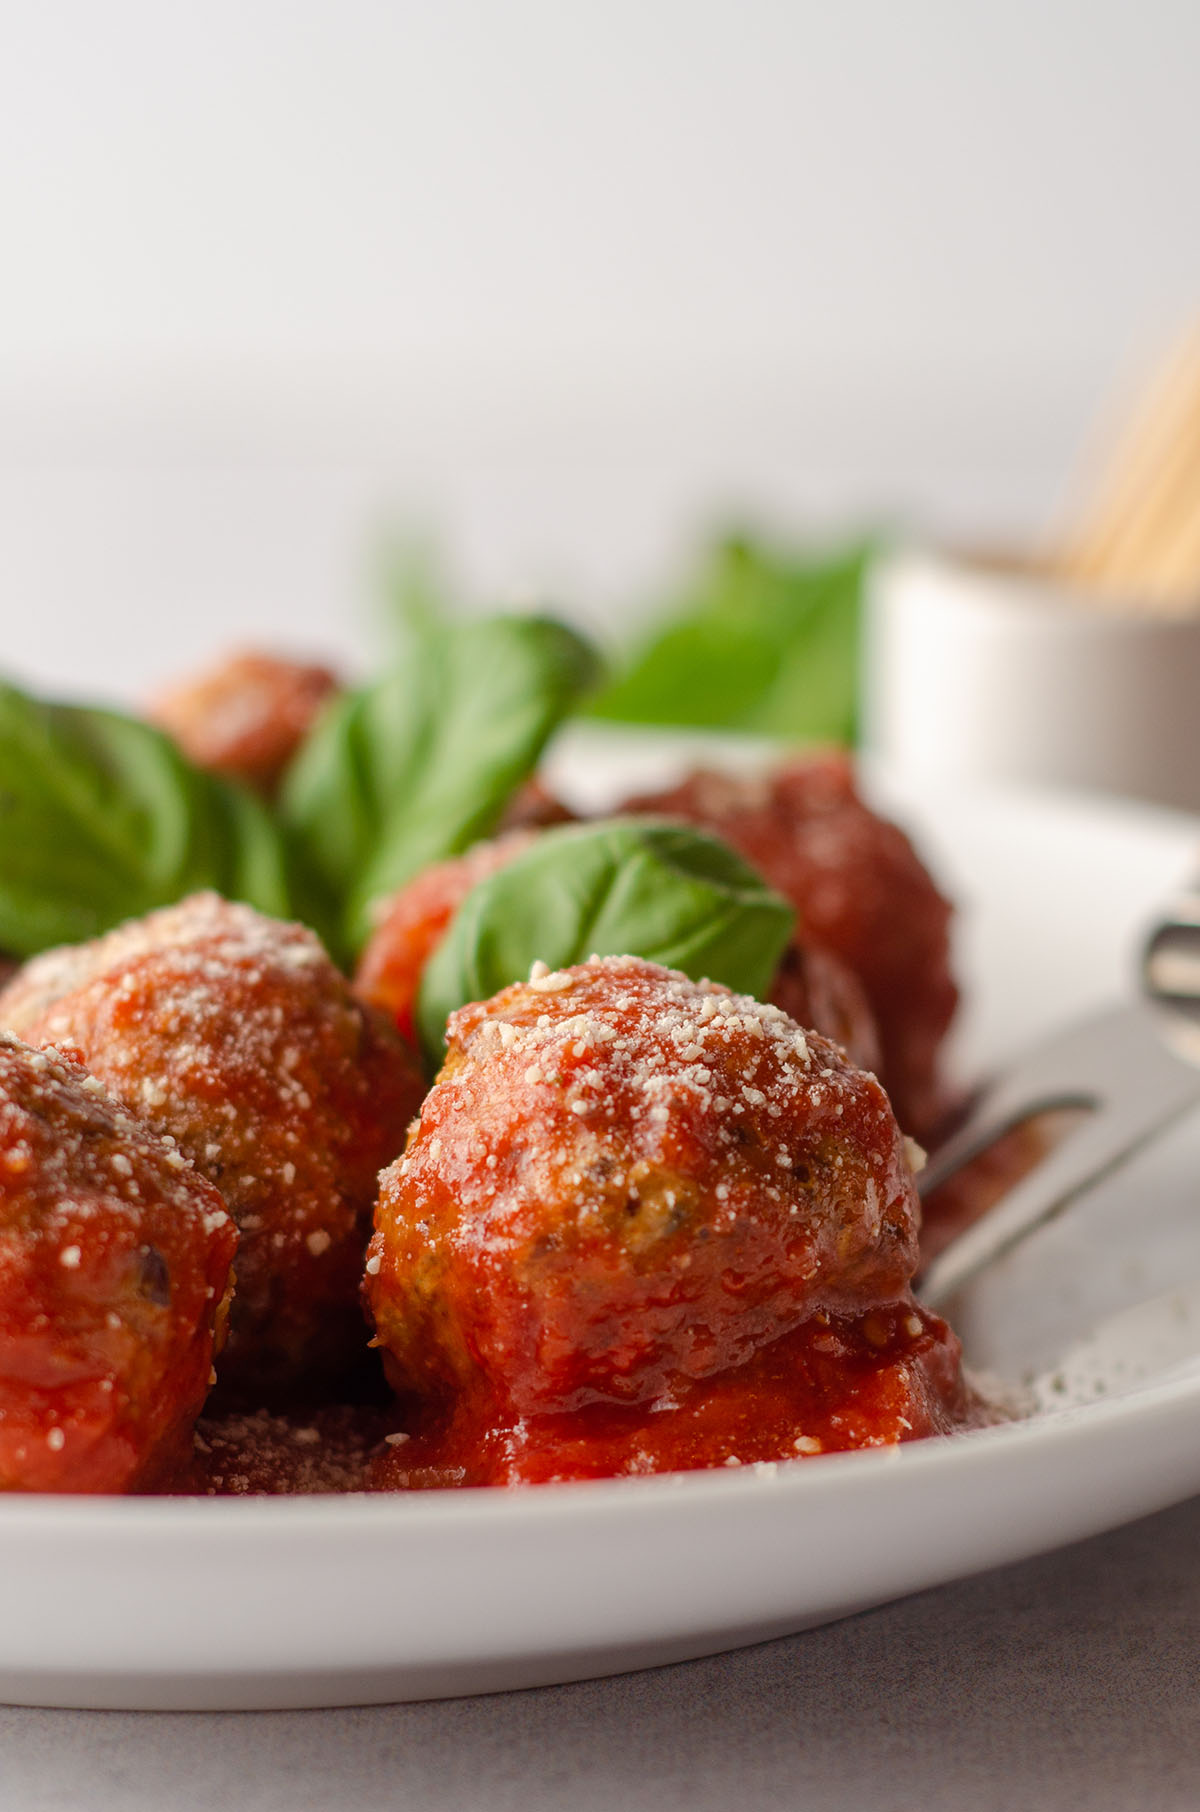 gluten free meatballs on a plate with basil leaves and a serving fork